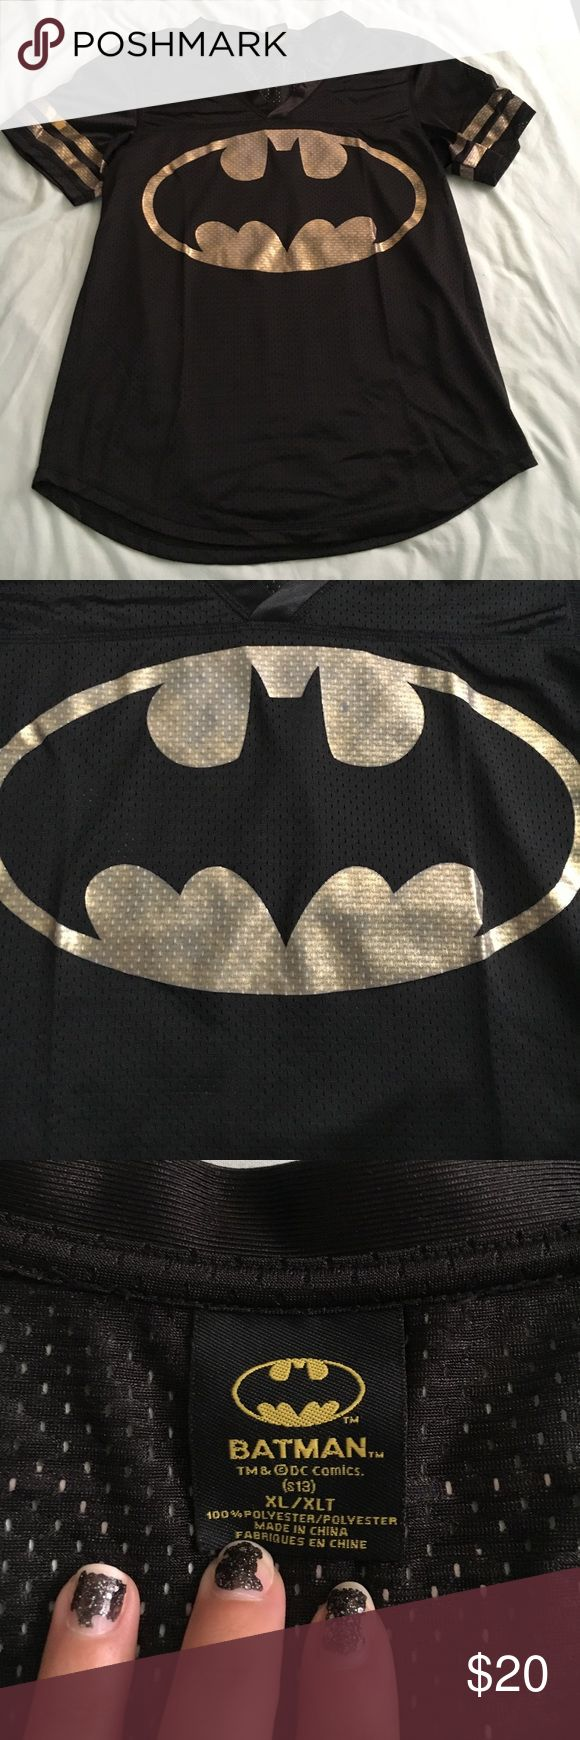 Batman Football Jersey Black and gold women's #batman football jersey. There is some wear to the gold bands around the arms (see pictures). Size x-large. #dccomics Tops Tees - Short Sleeve